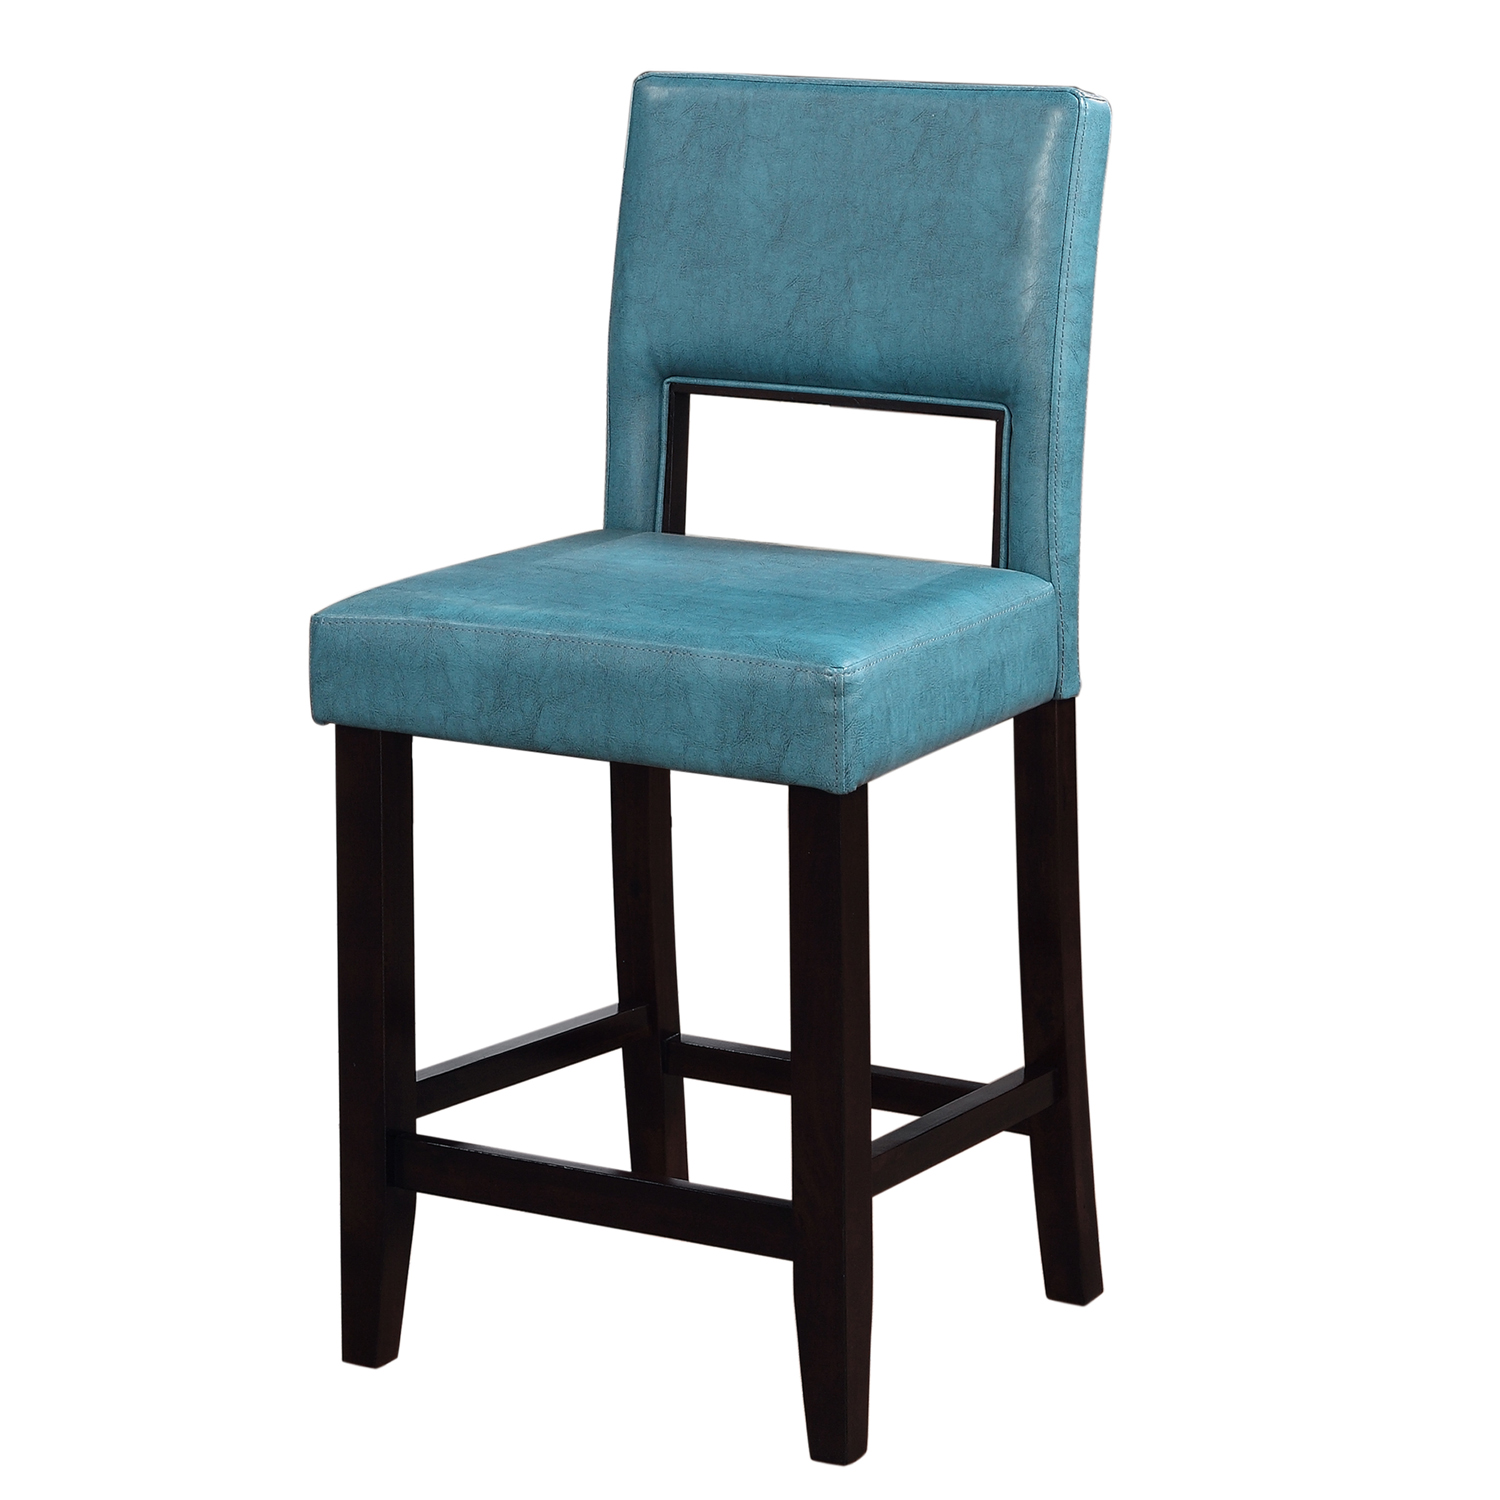 Linon Vega Counter Stool, 24 inch Seat Height, Multiple Colors